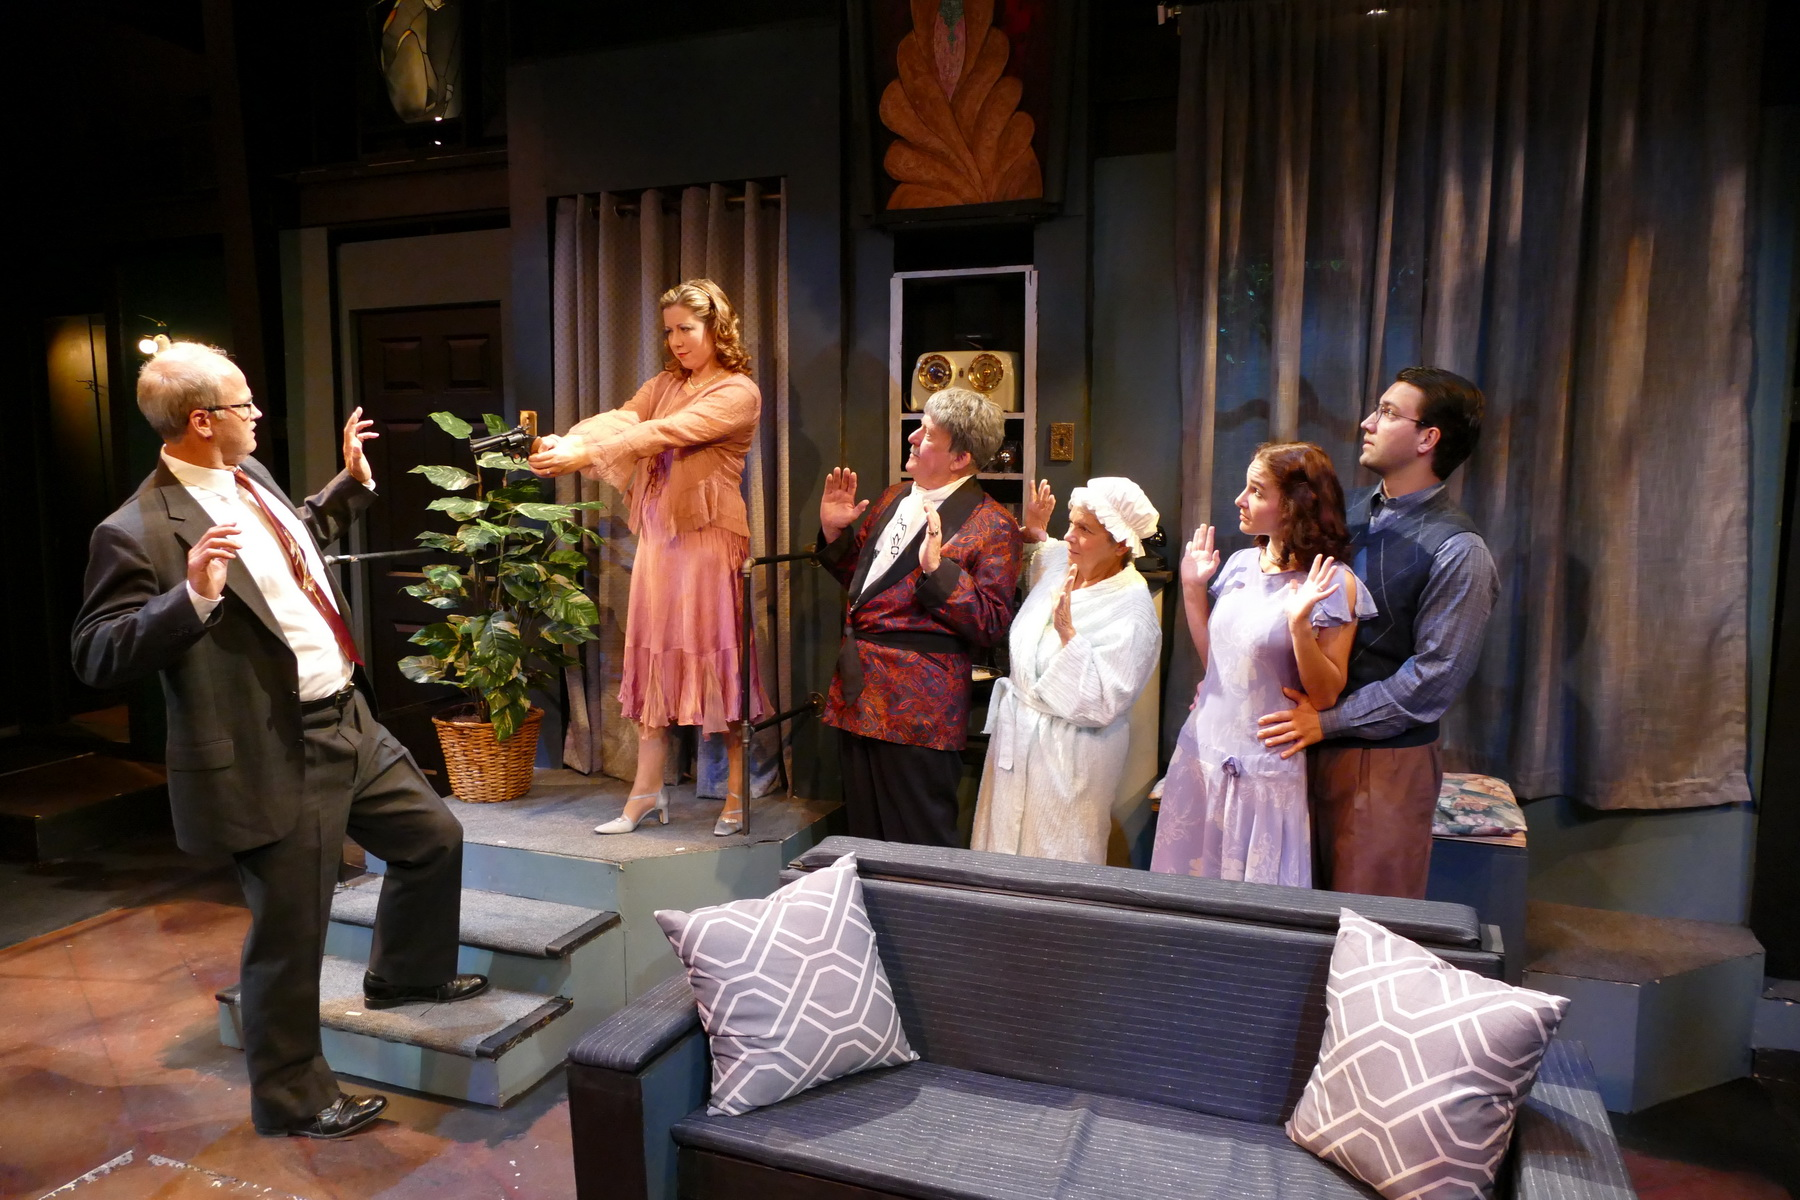 Terry Smith as James Crandall, Debbie Jenkins as Mavis Templeton Hollister, Lou Will as Edgar Hollister, Nancy Allen as Mrs. Lottie Molloy, Caitlin Halstead as Susan Hollister, and Simon